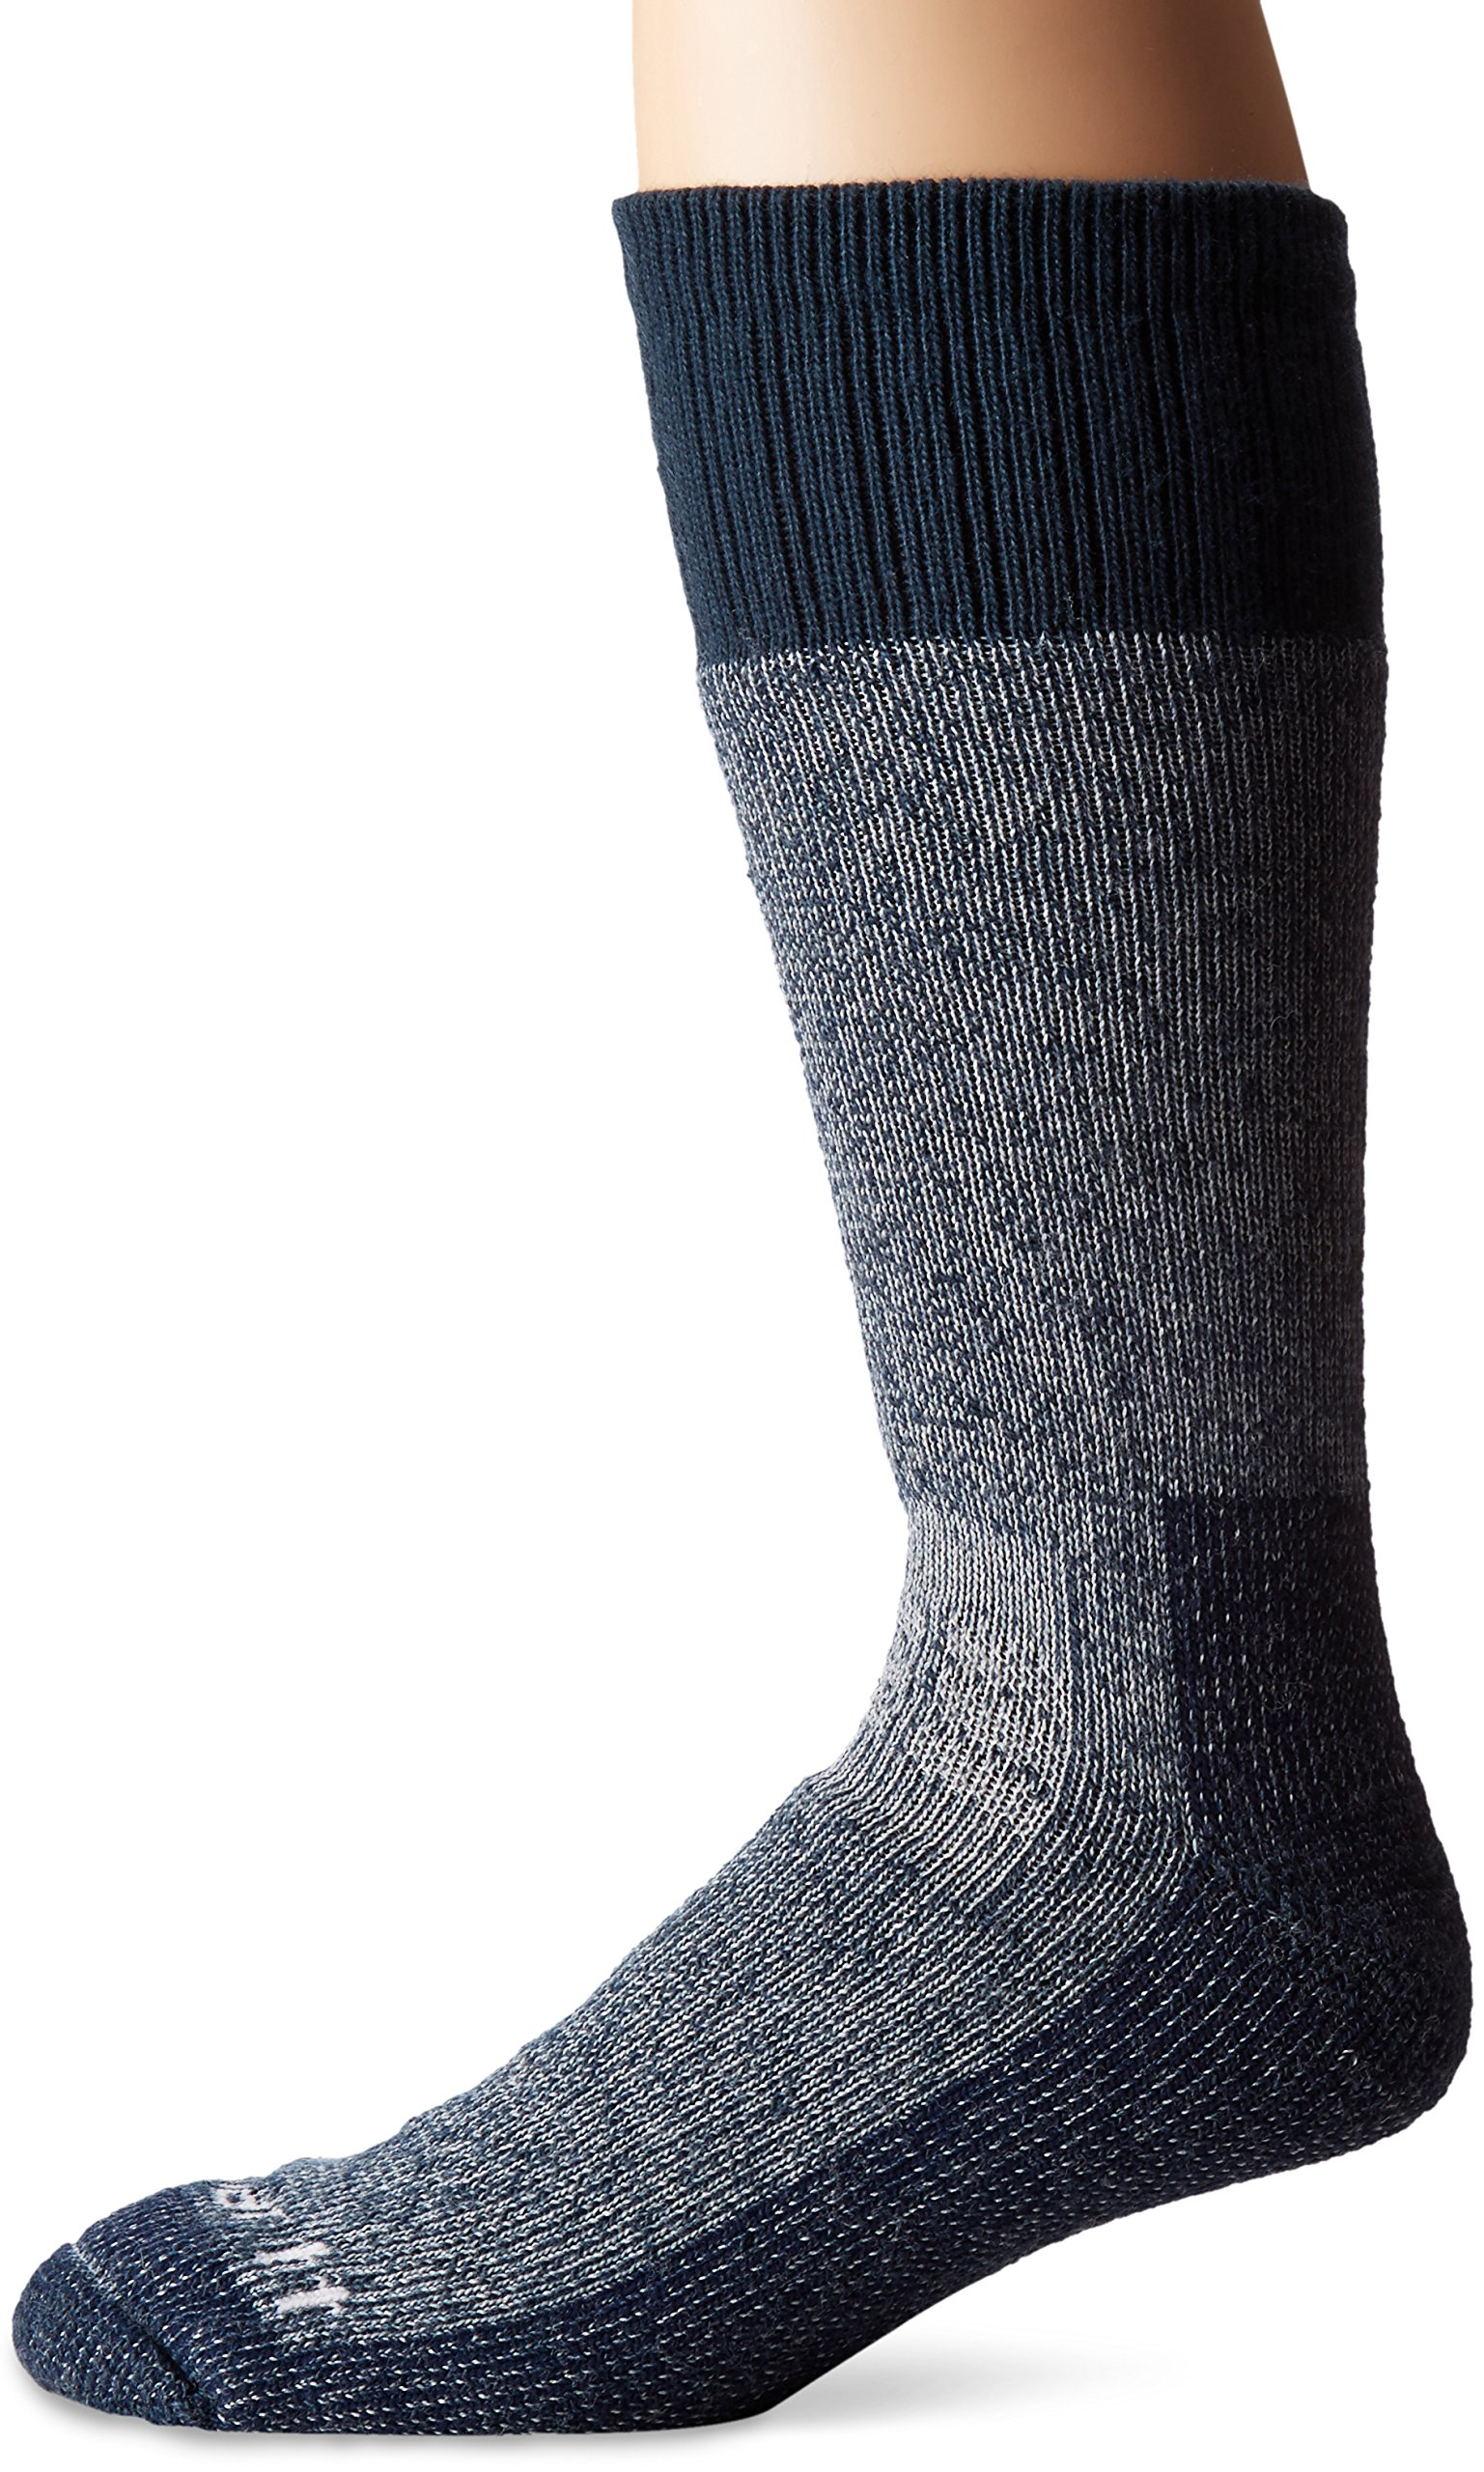 Carhartt Mens Extremes Weather Socks